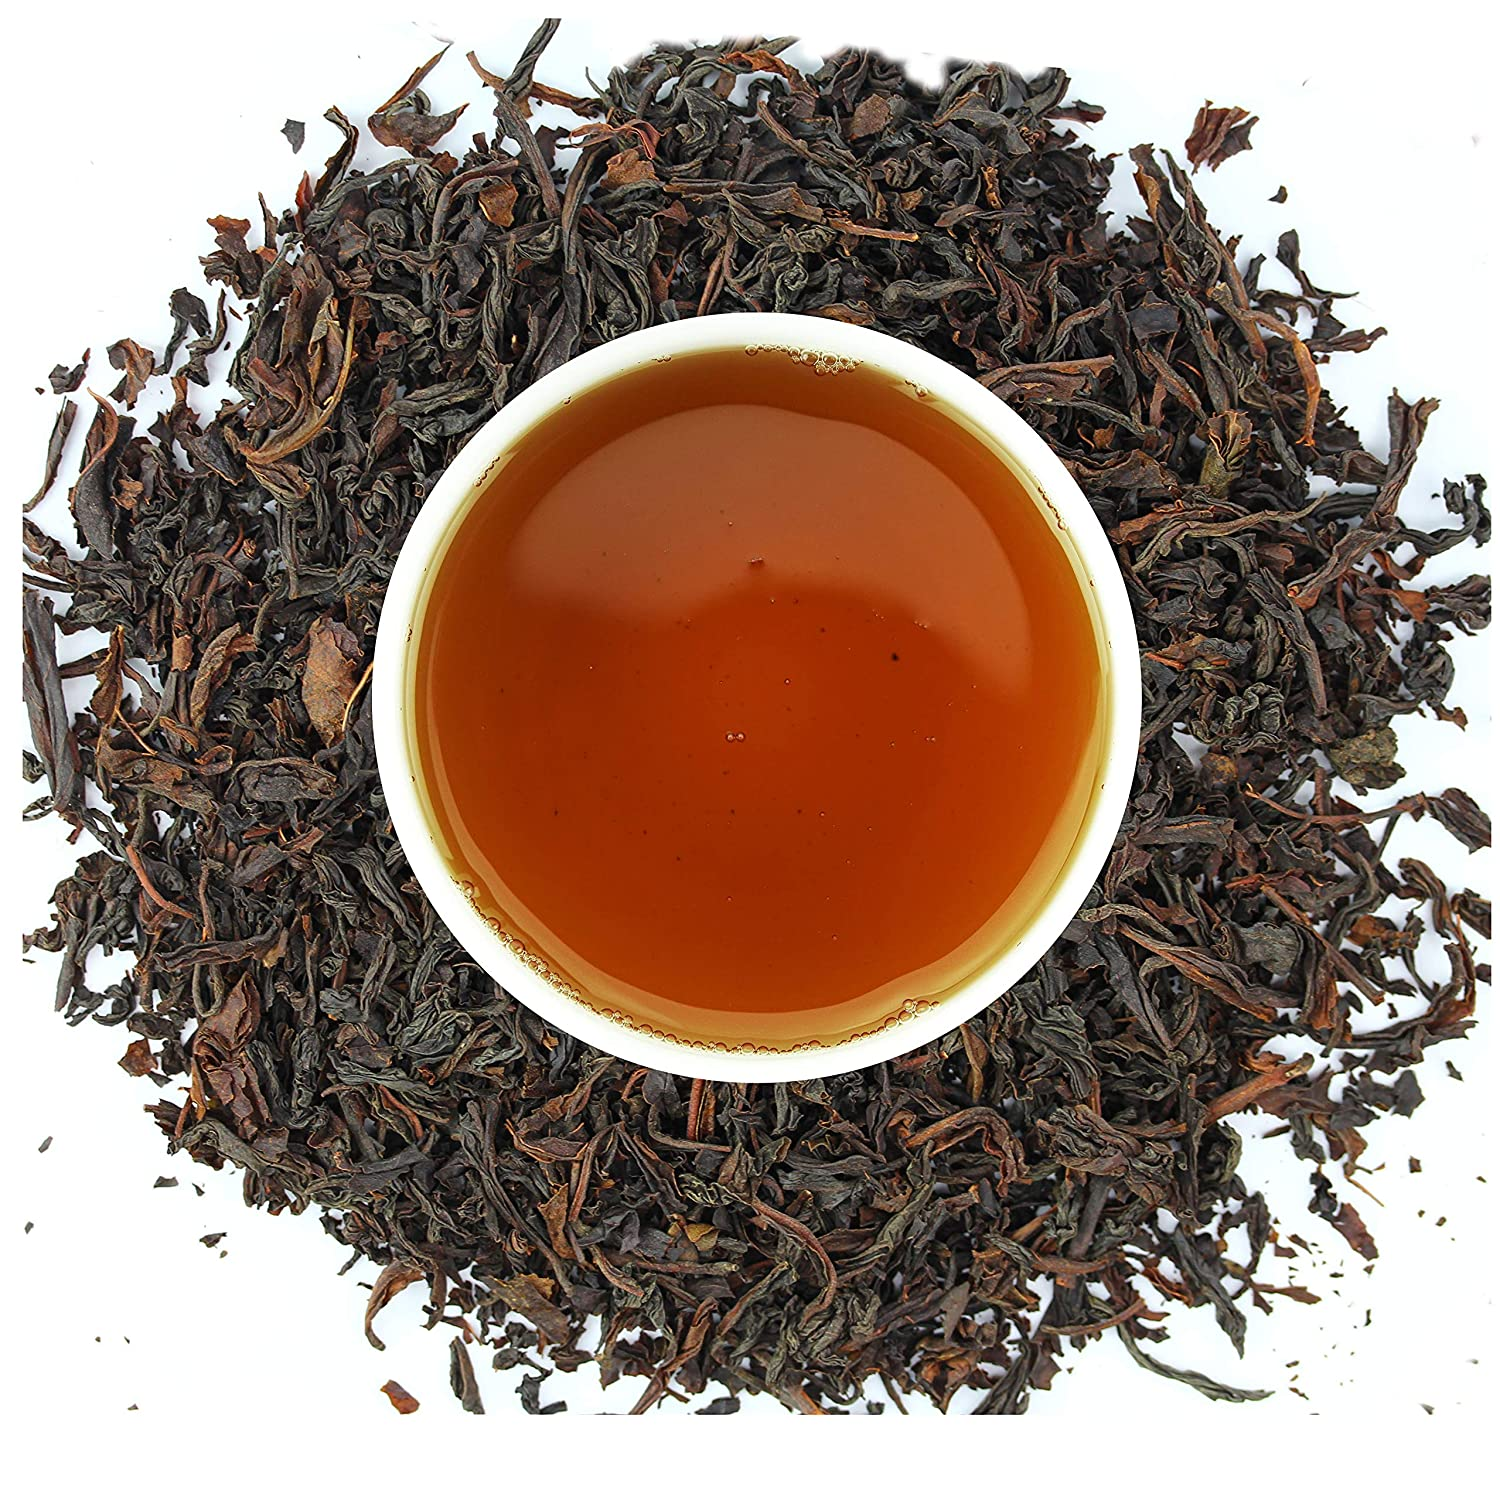 English Breakfast Tea, CRISP, RICH & AROMATIC well-rounded loose leaf tea